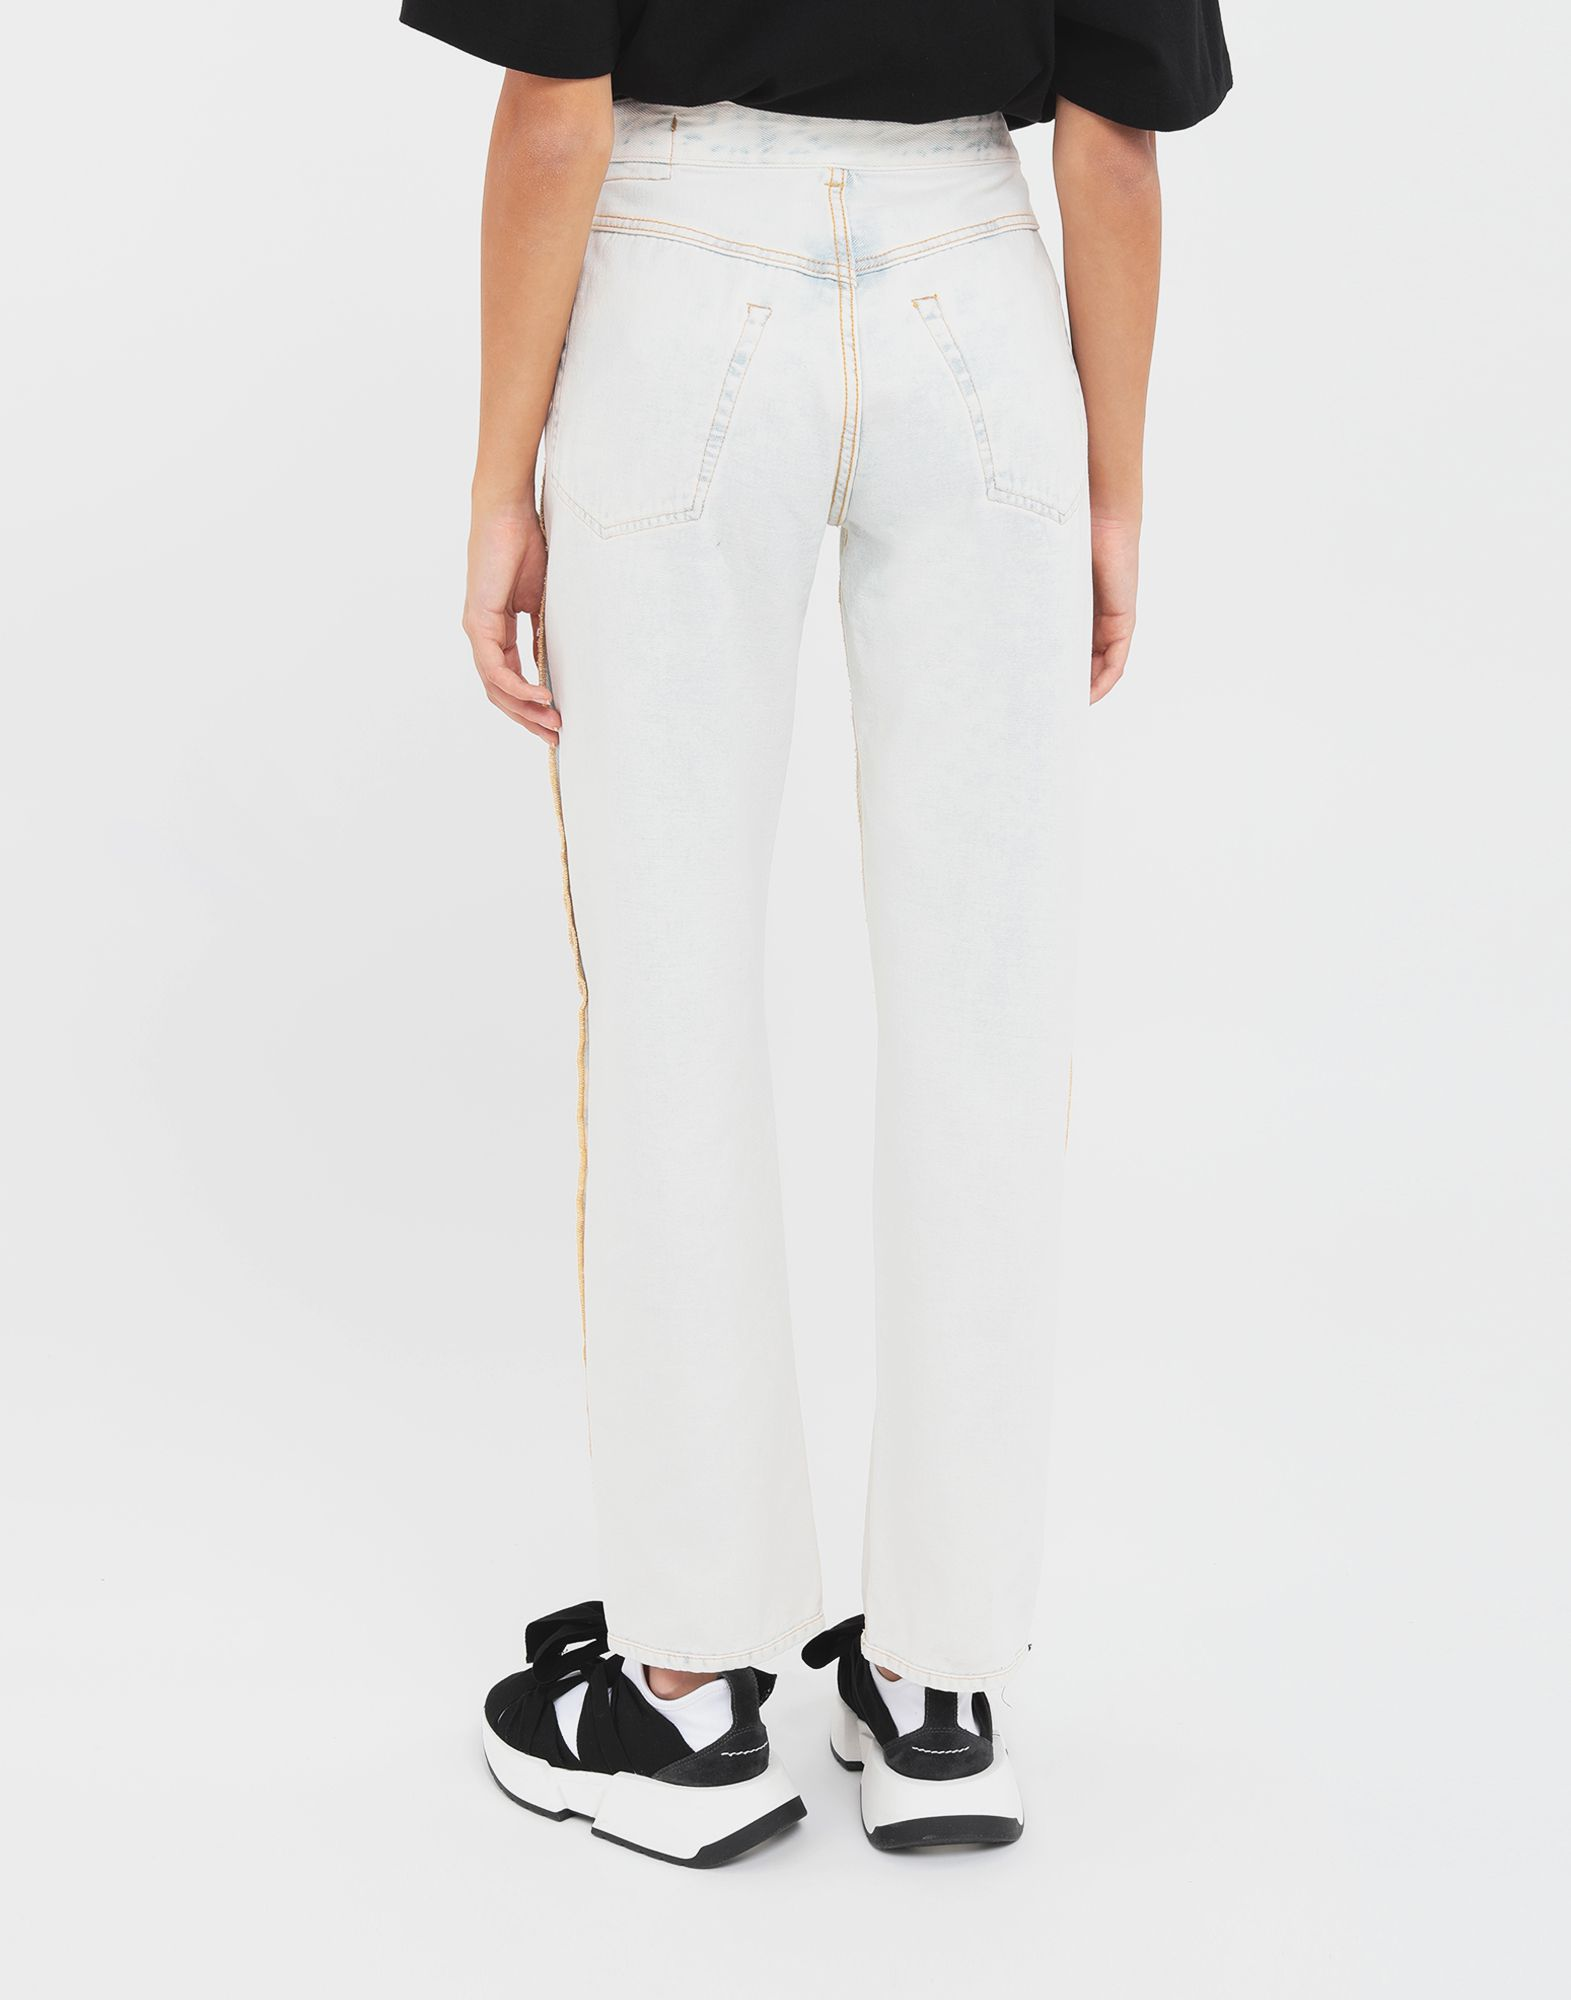 MM6 MAISON MARGIELA Reversed jeans Jeans Woman e